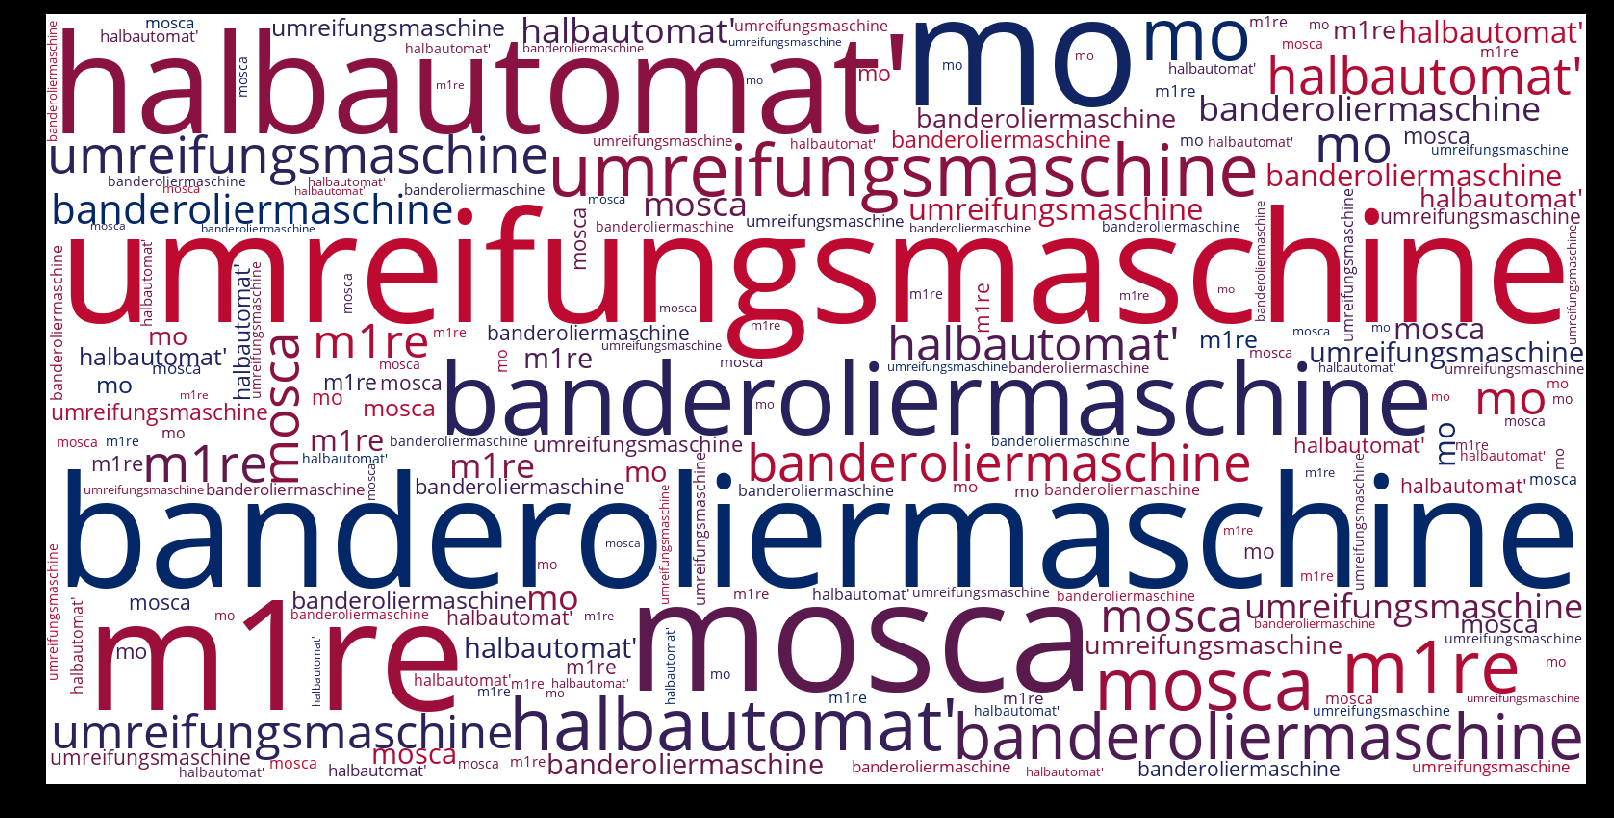 Banderoliermaschine-wordcloud